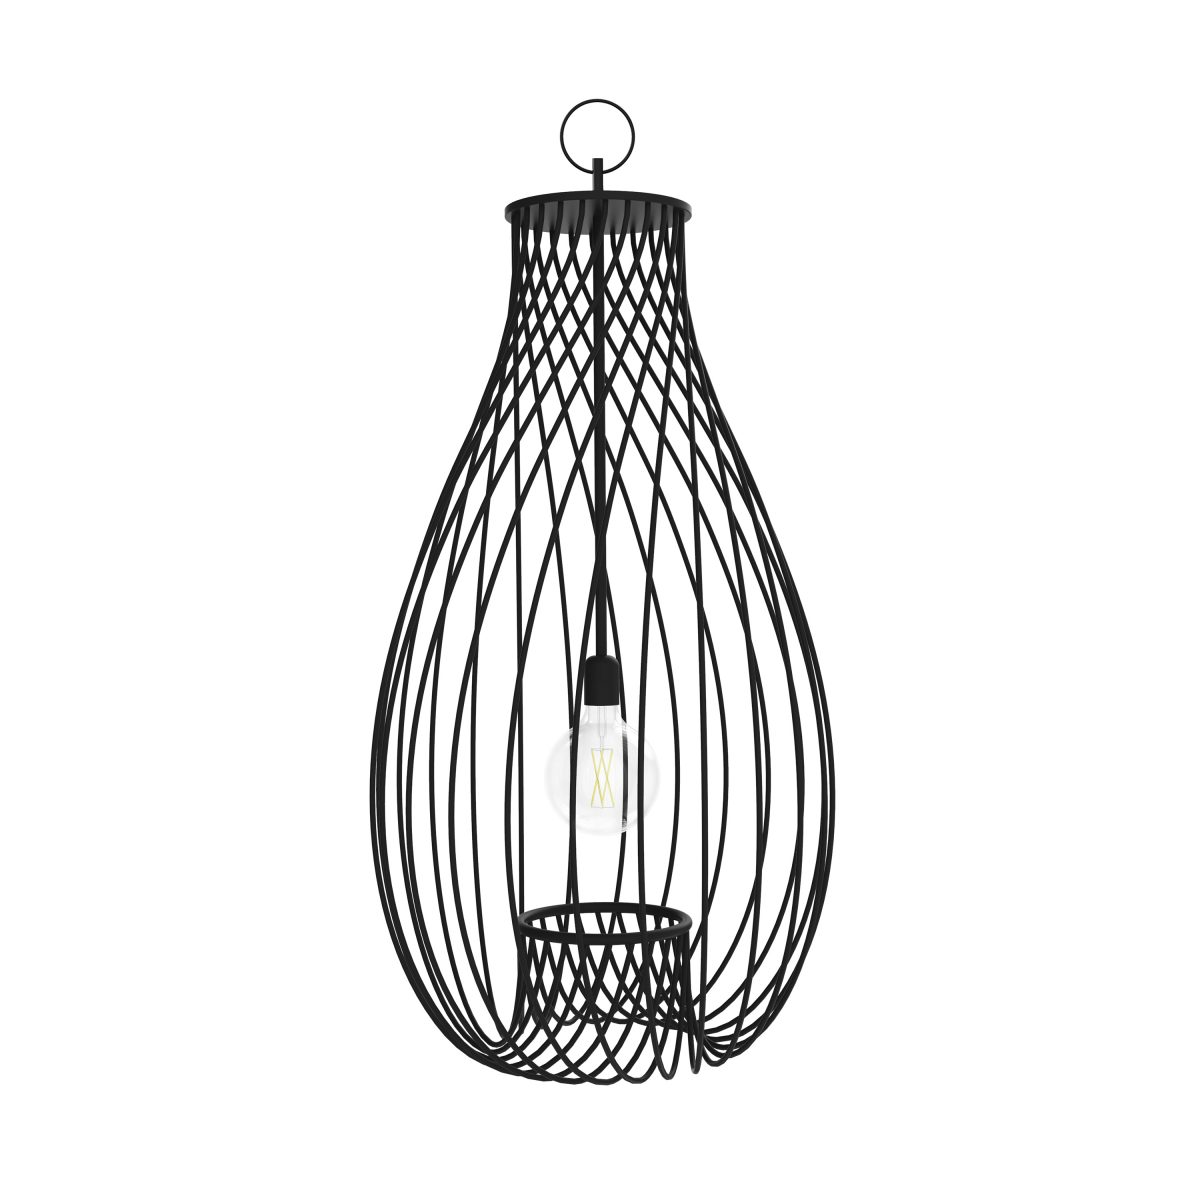 JSPR Pirouette II Chandelier Black High Res